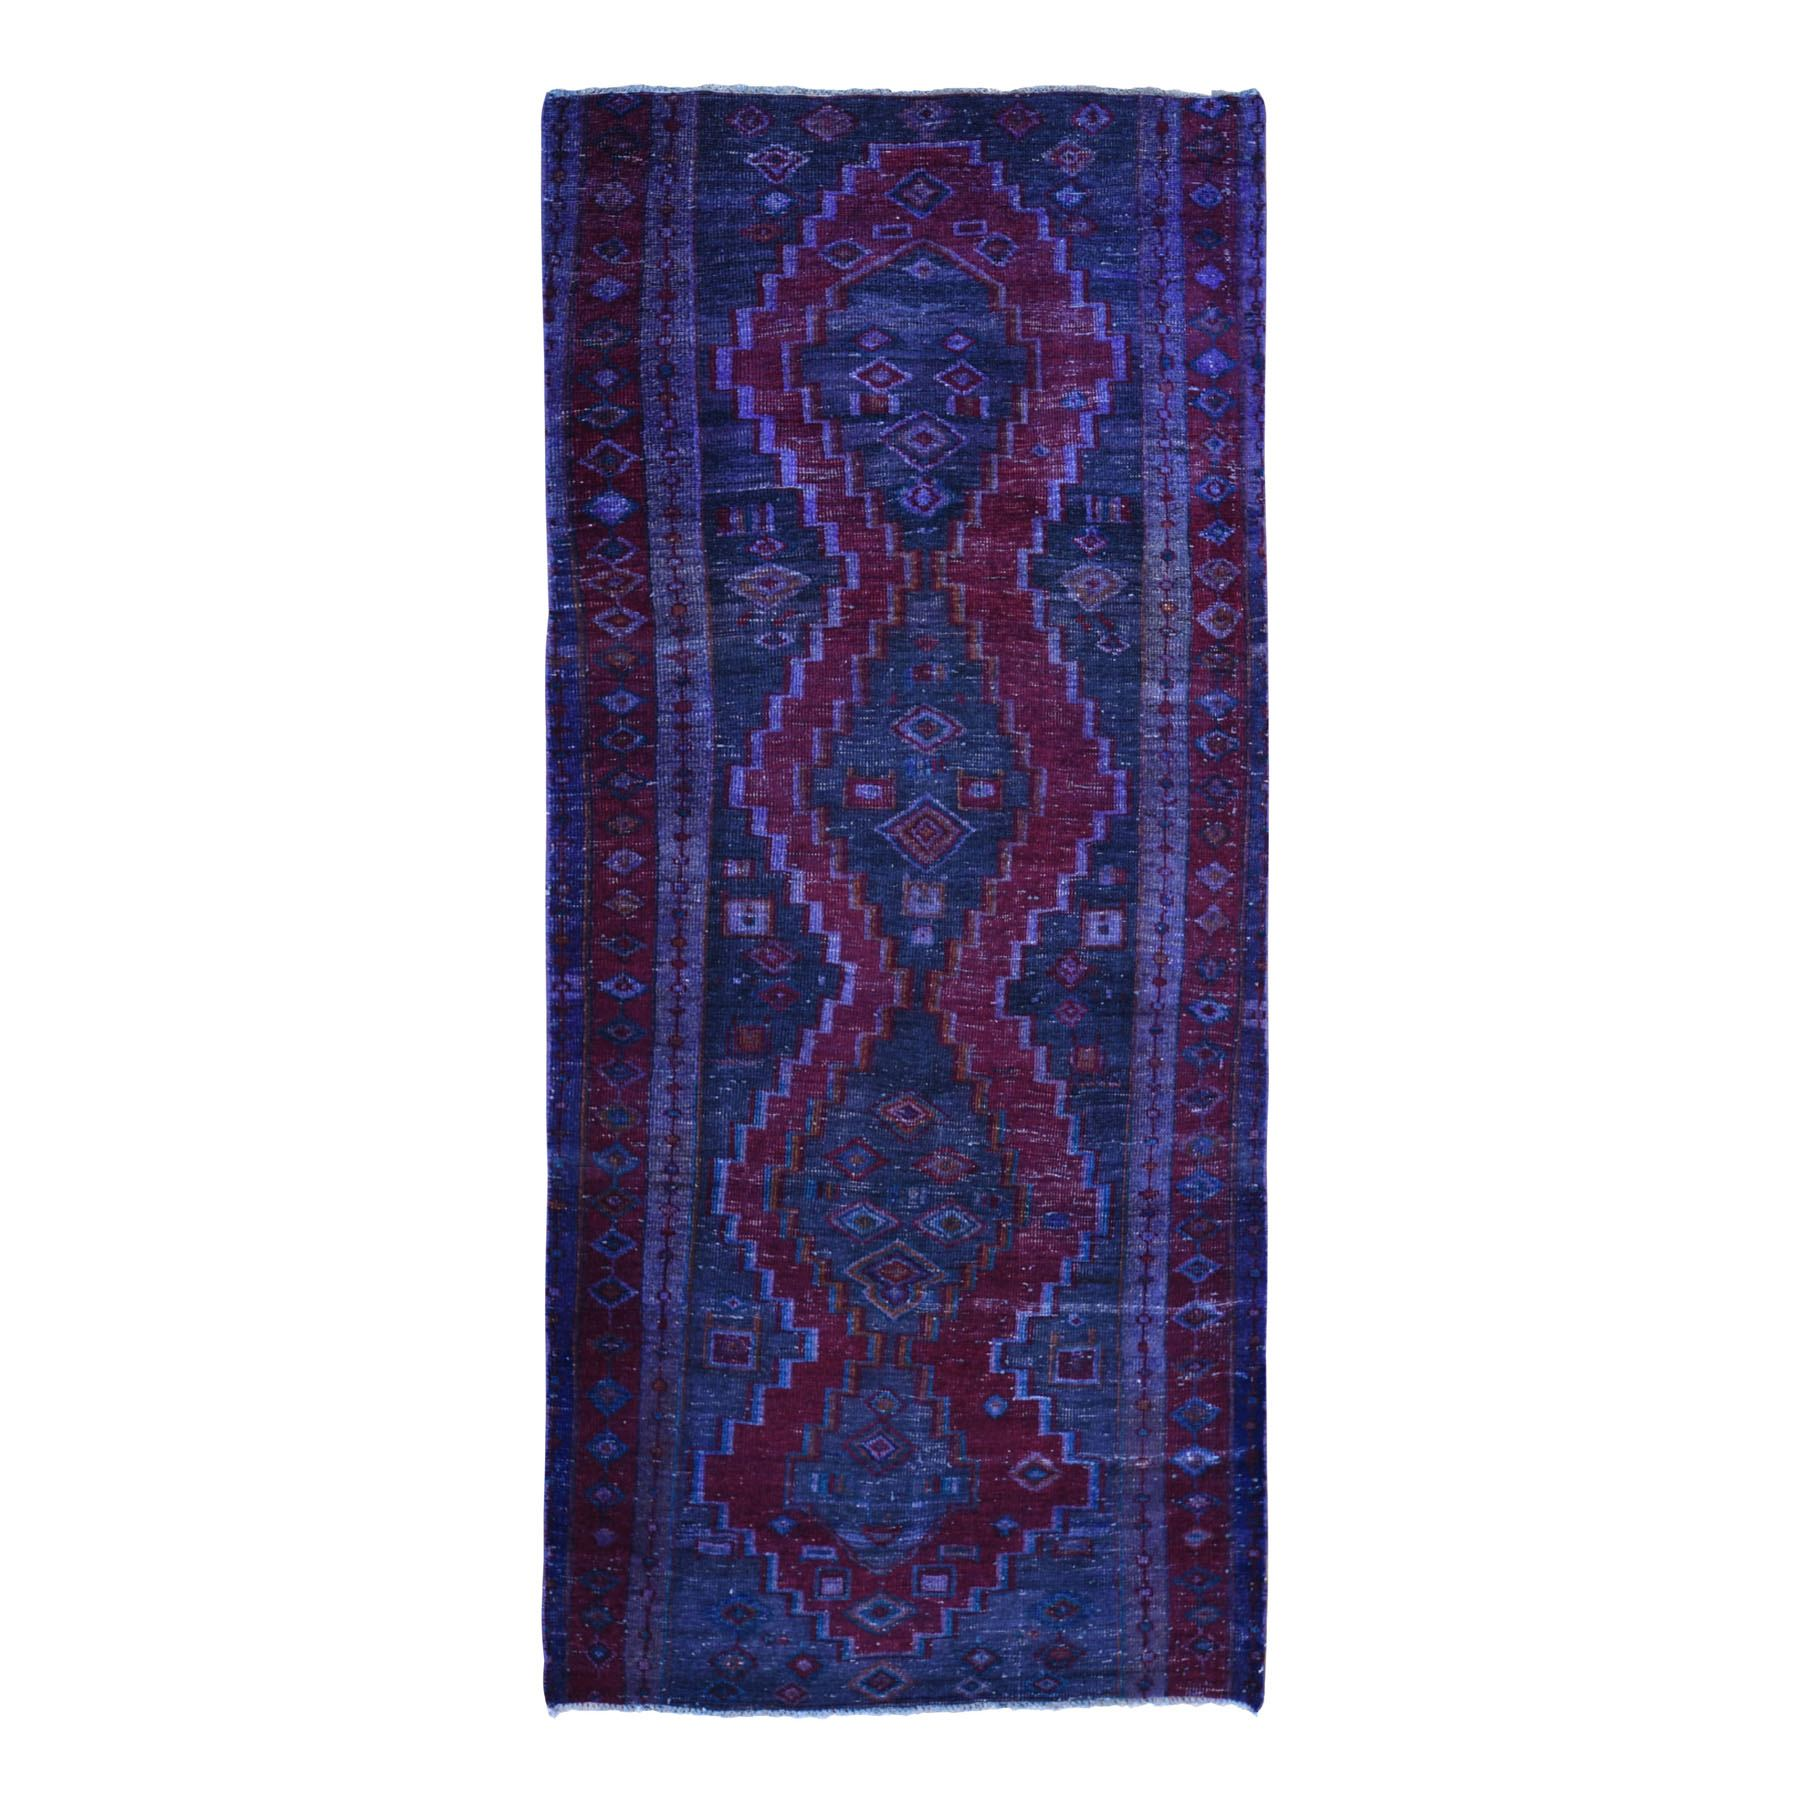 Gallery Size Overdyed Persian Hamadan Worn Wool Hand Knotted Oriental Rug